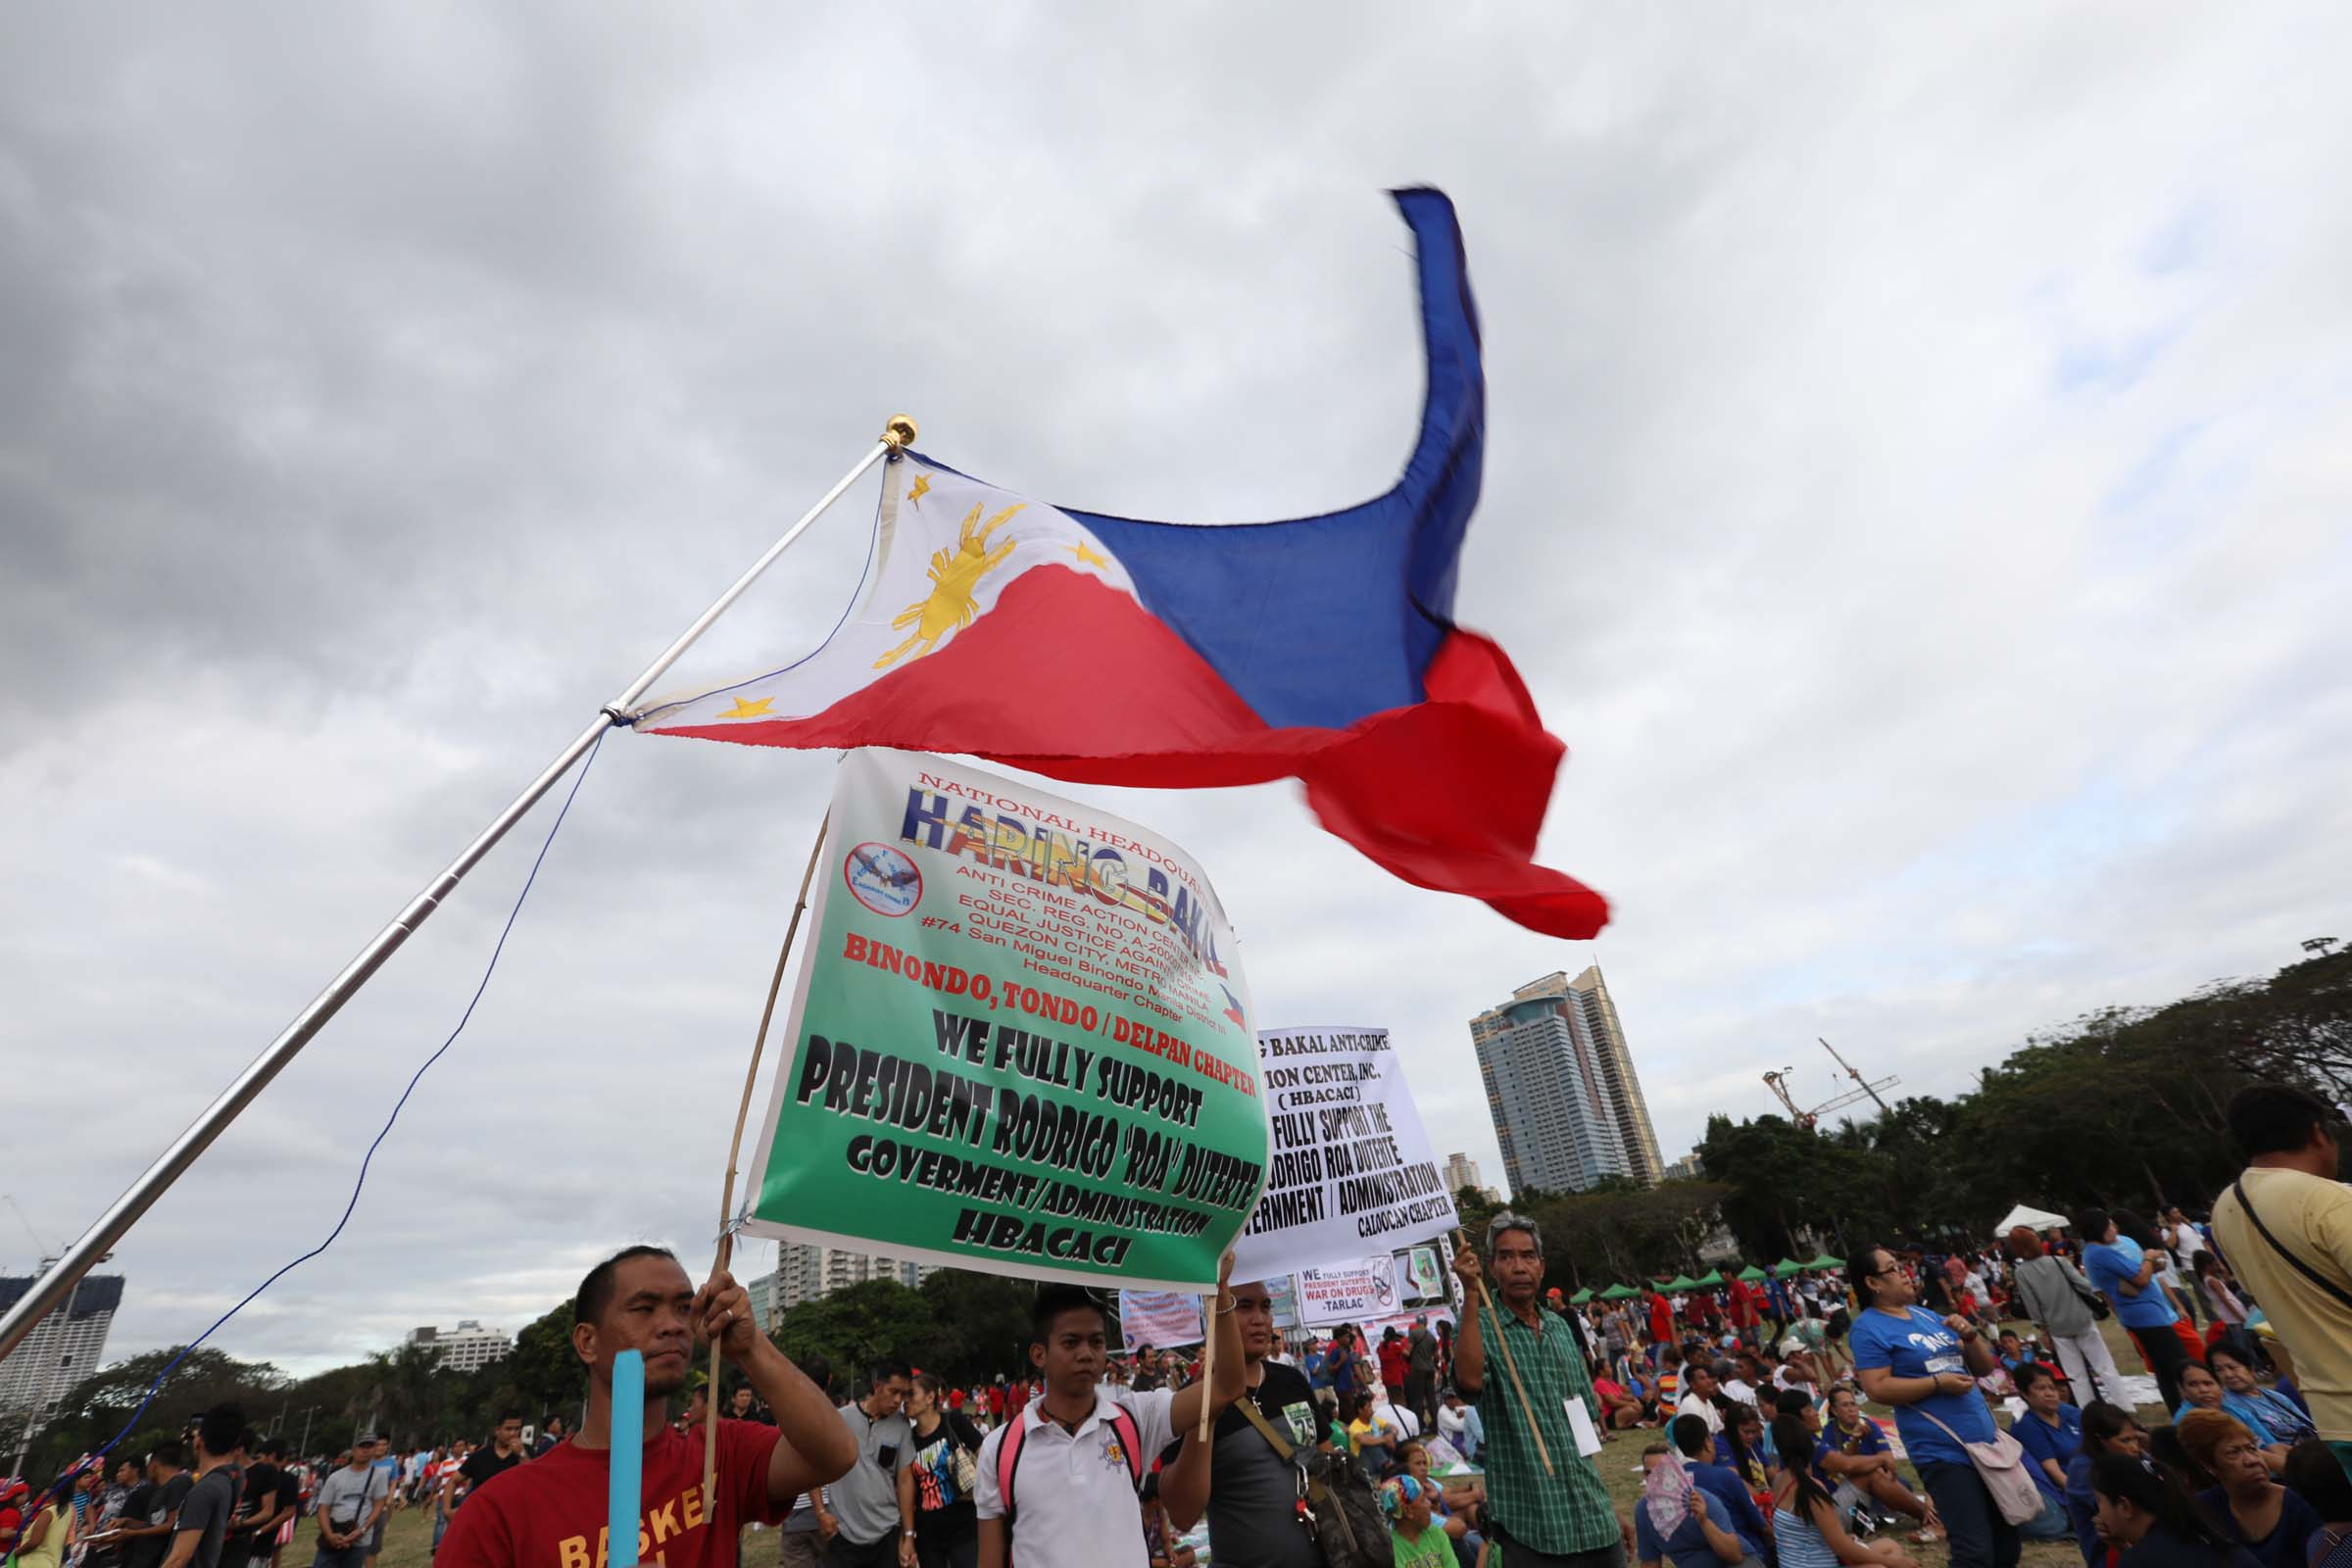 Malacañan on Saturday, February 25, said it agrees with critics in urging people to remember and relive the spirit of nation-building that brought about the EDSA People Power Revolution 31 years ago but cautioned against political opportunists. (Photo: Philippine News Agency)